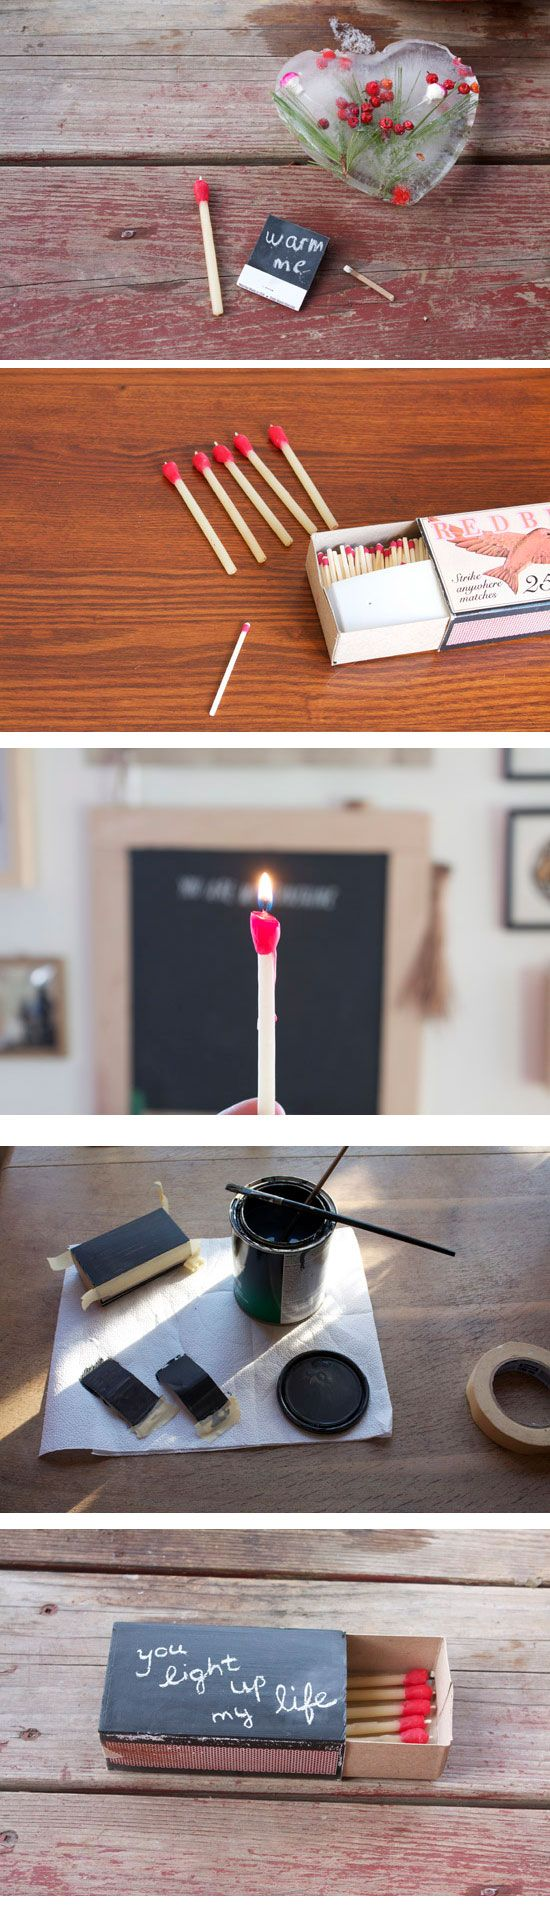 Matchstick Beeswax Candles | DIY Valentines Ideas for Boyfriend ...